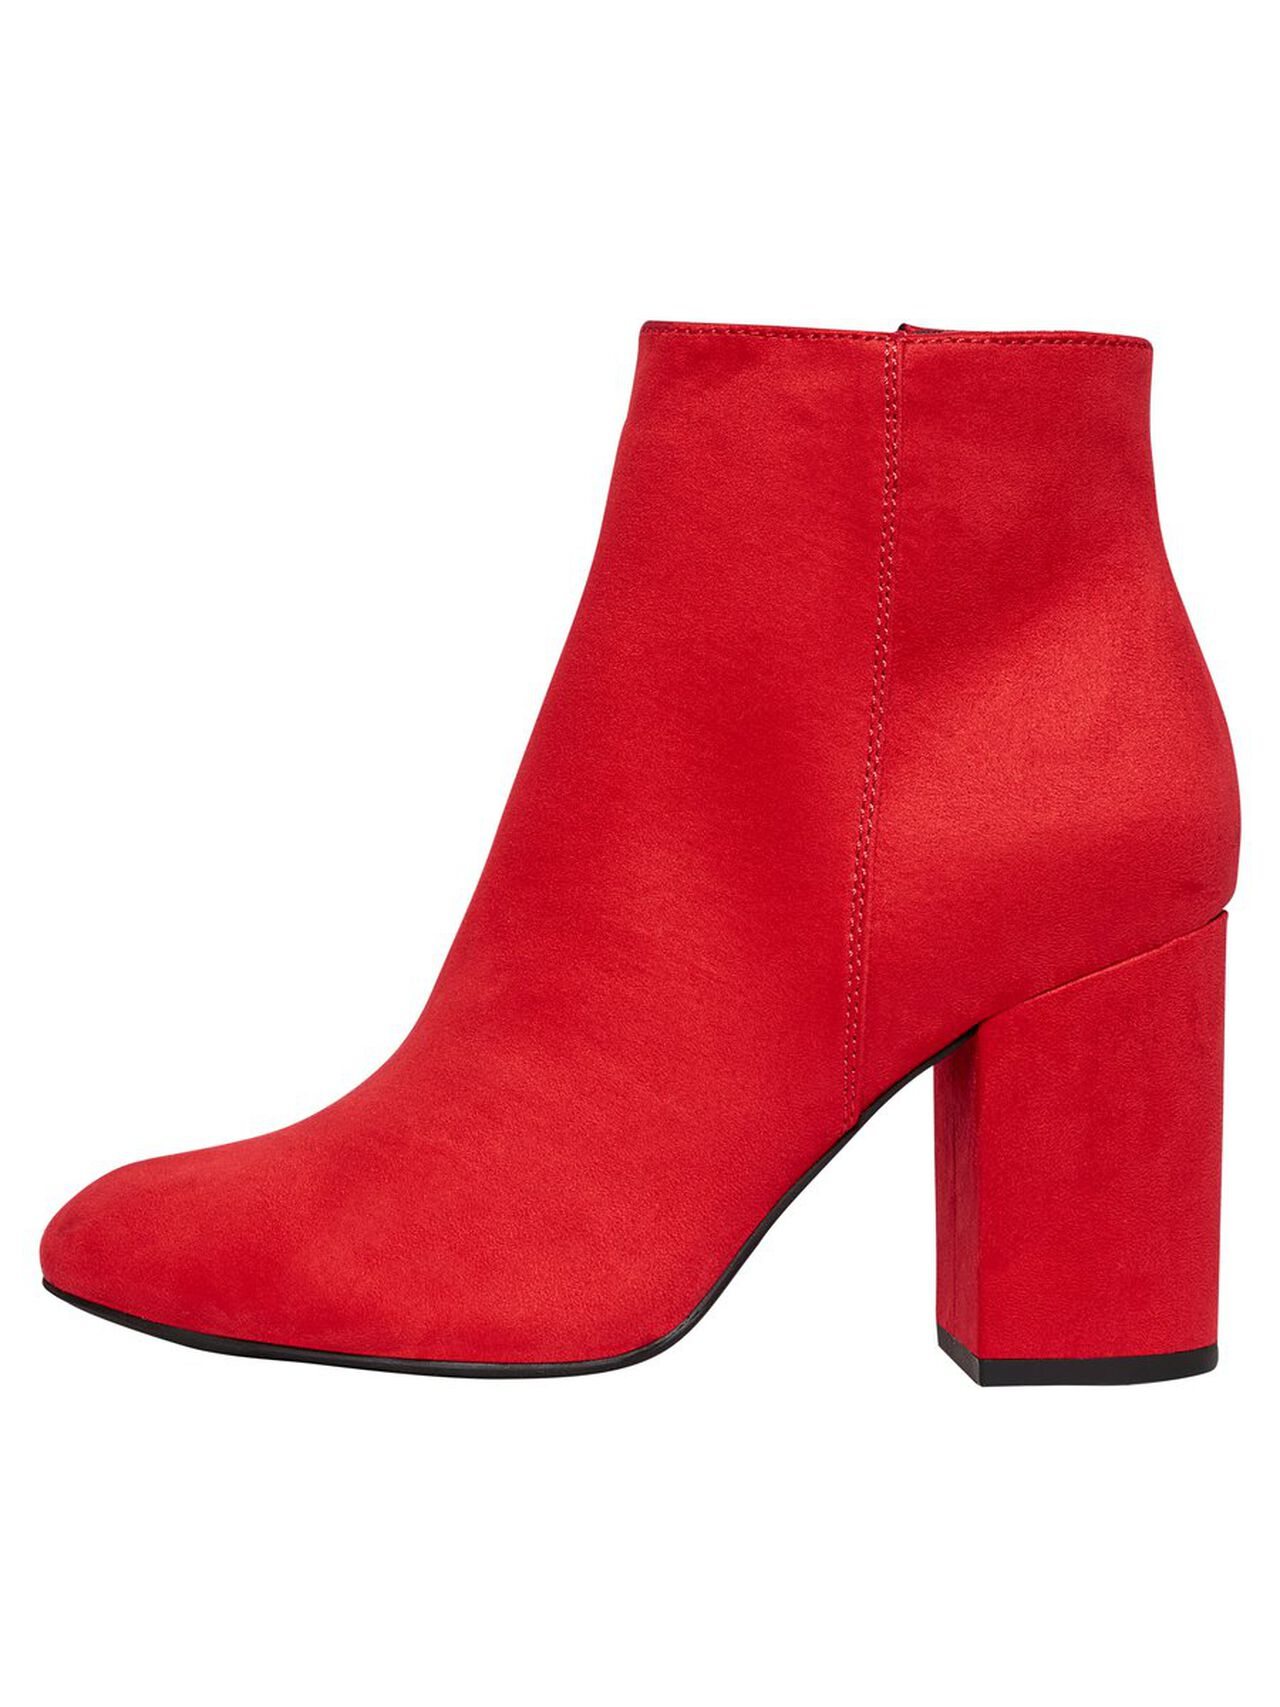 ONLY High Boots Women Red